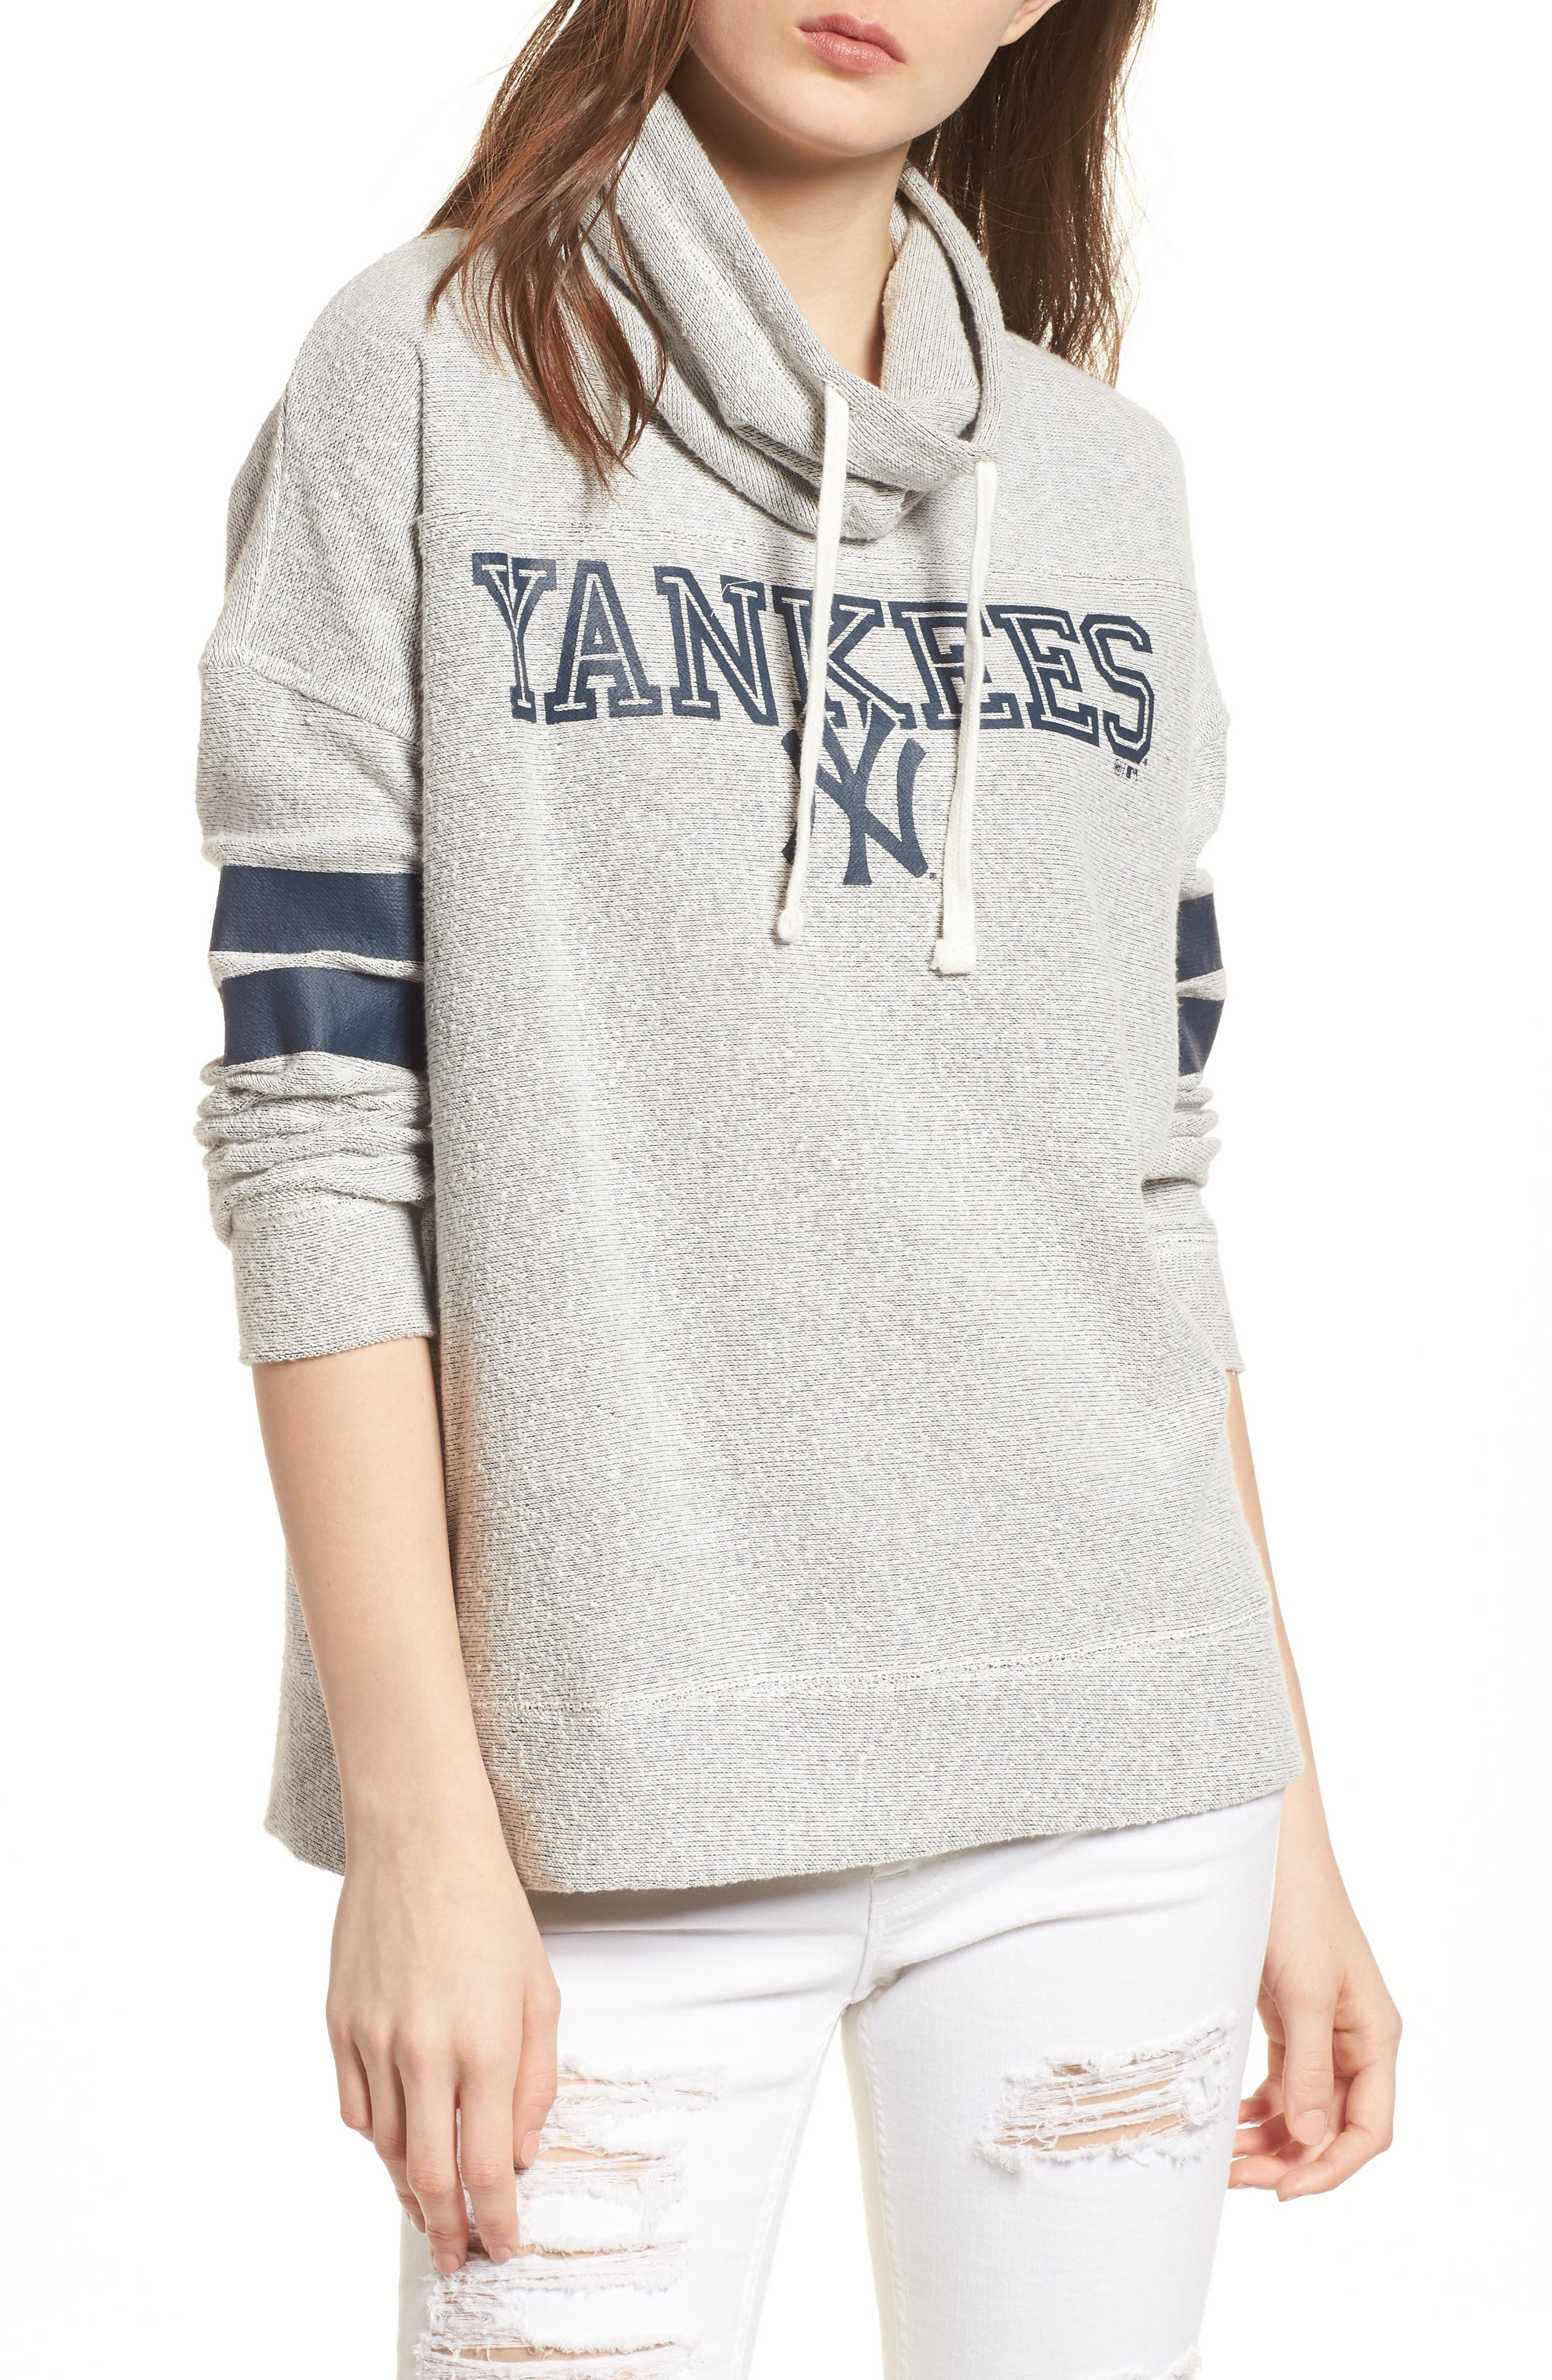 Encore Offsides New York Yankees Funnel Neck Sweatshirt,                         Main,                         color, Pumice Grey